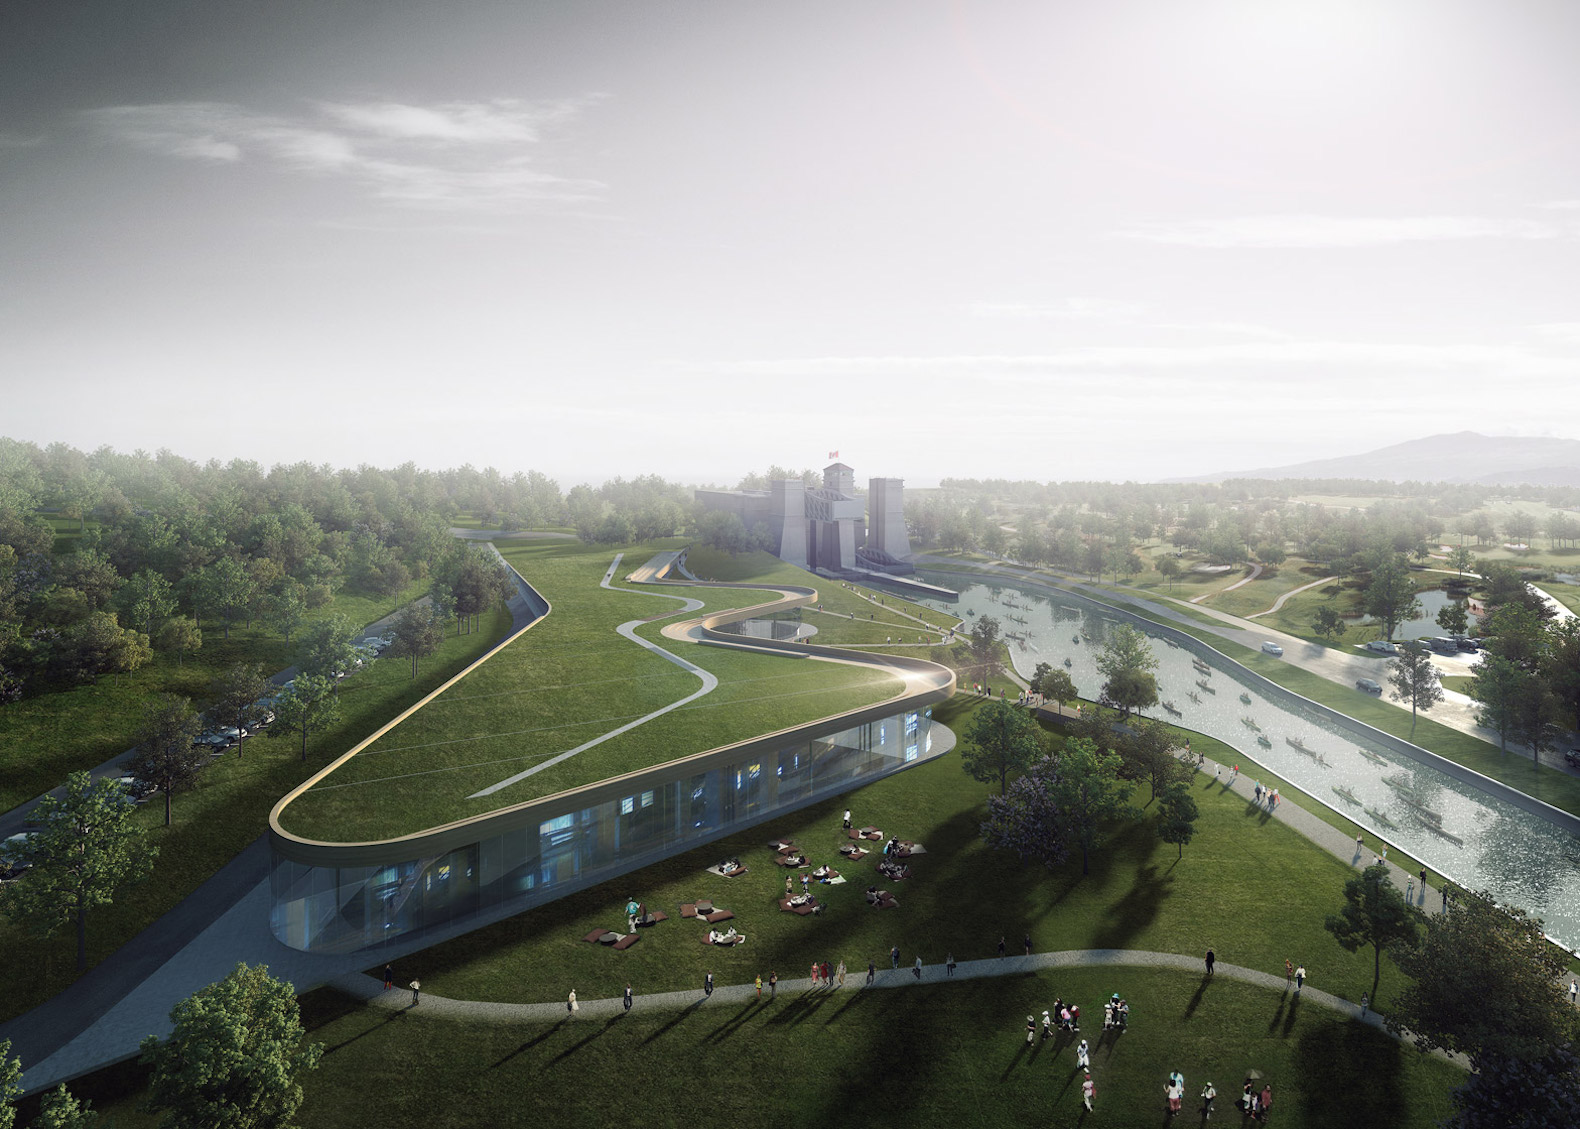 Green-roofed Canadian Canoe Museum will house the world's largest collection of canoes and kayaks in Ontario